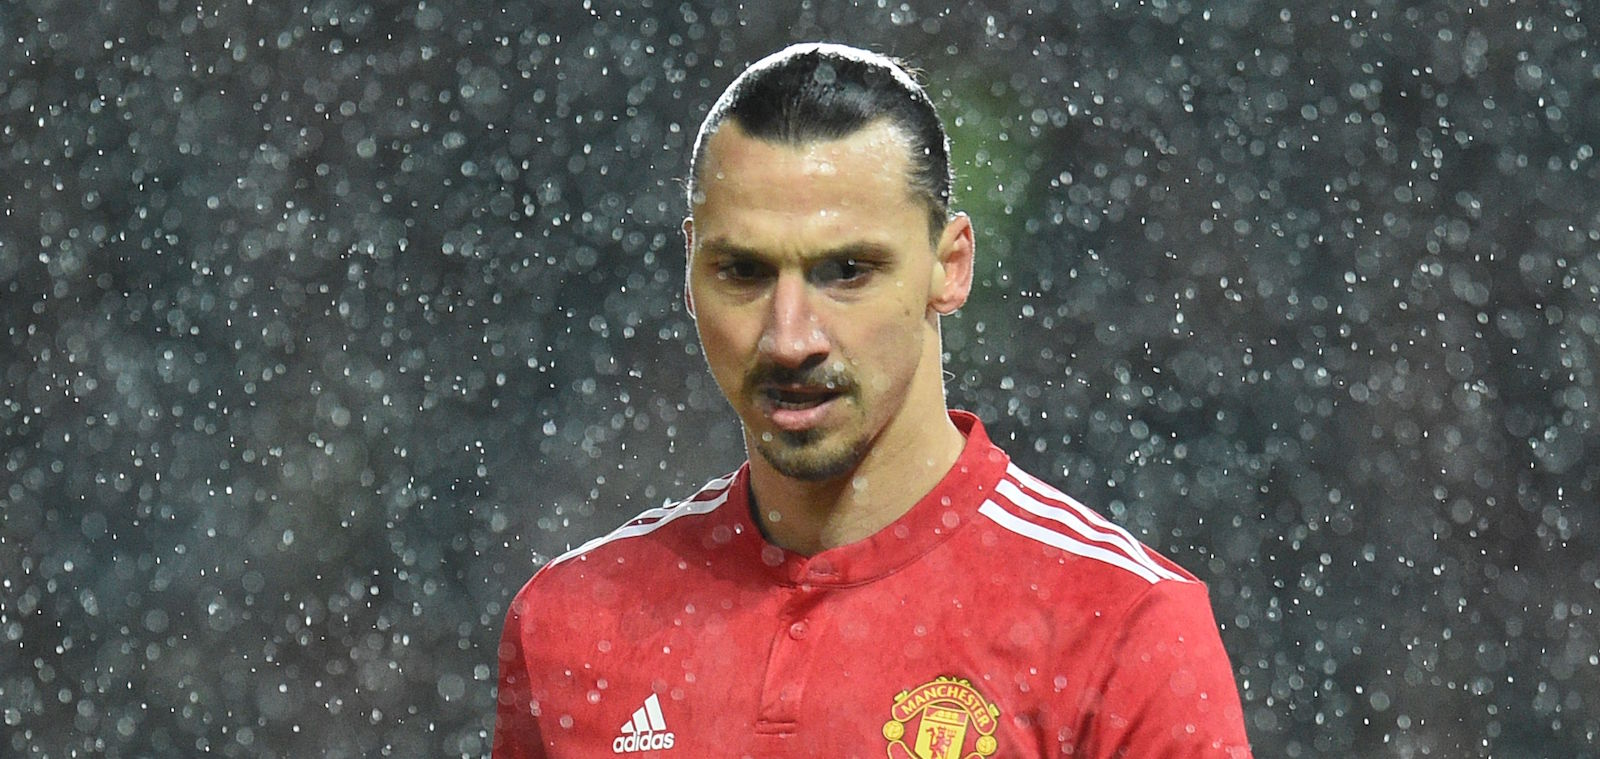 Jose Mourinho considering shock January bid to bring back Zlatan Ibrahimovic – report